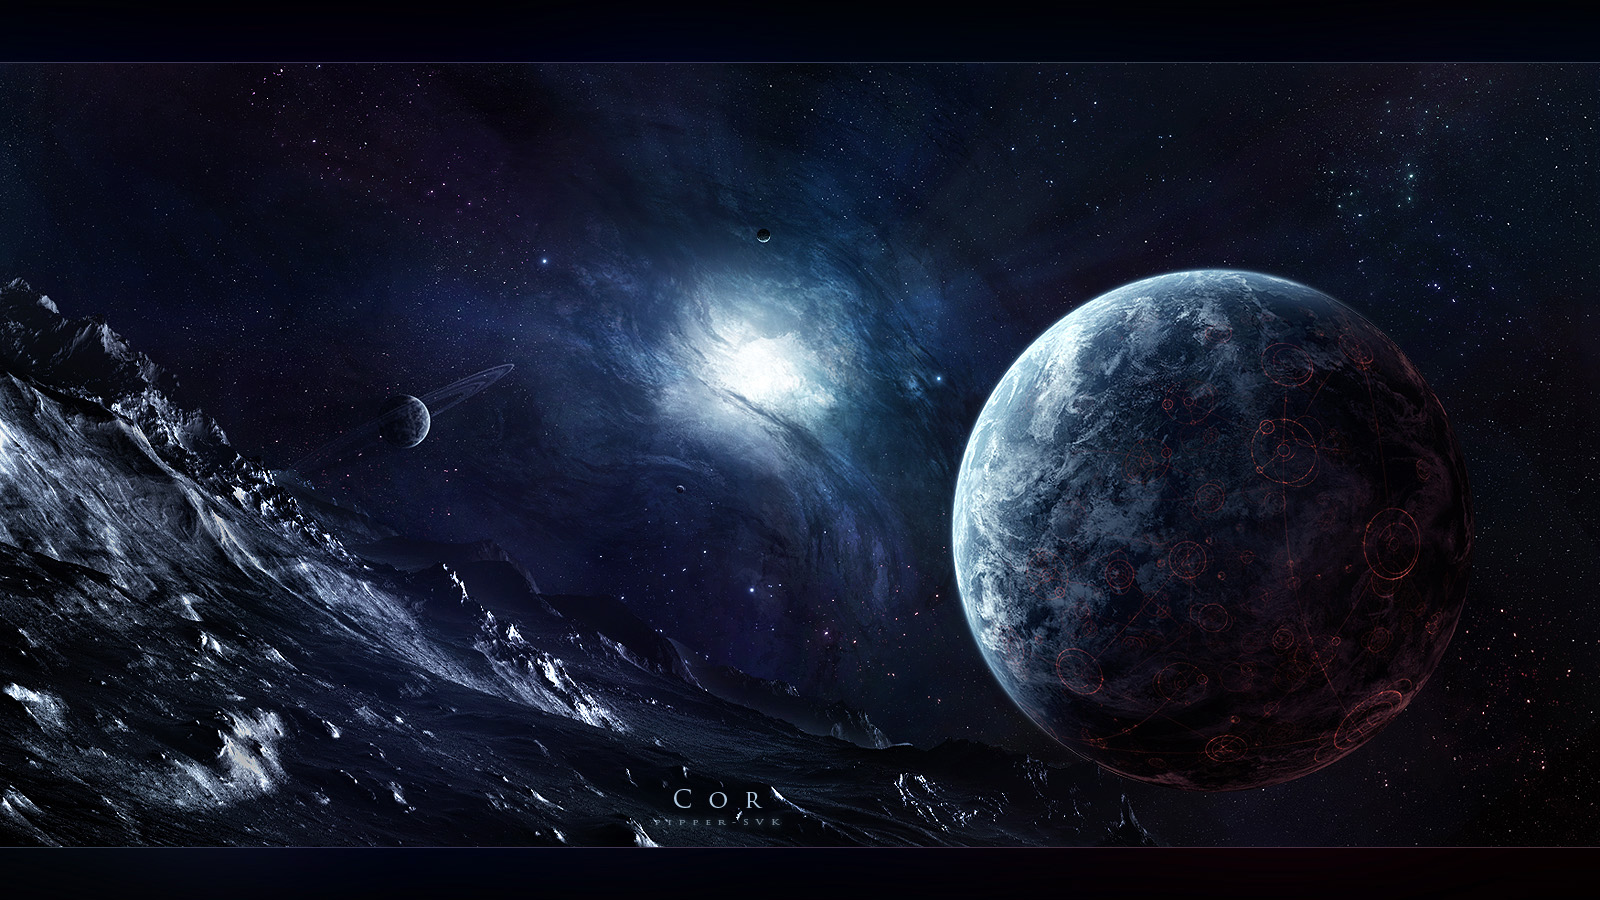 Planets wallpaper and background image 1600x900 id 370167 wallpaper abyss - Wallpapers 1600x900 ...